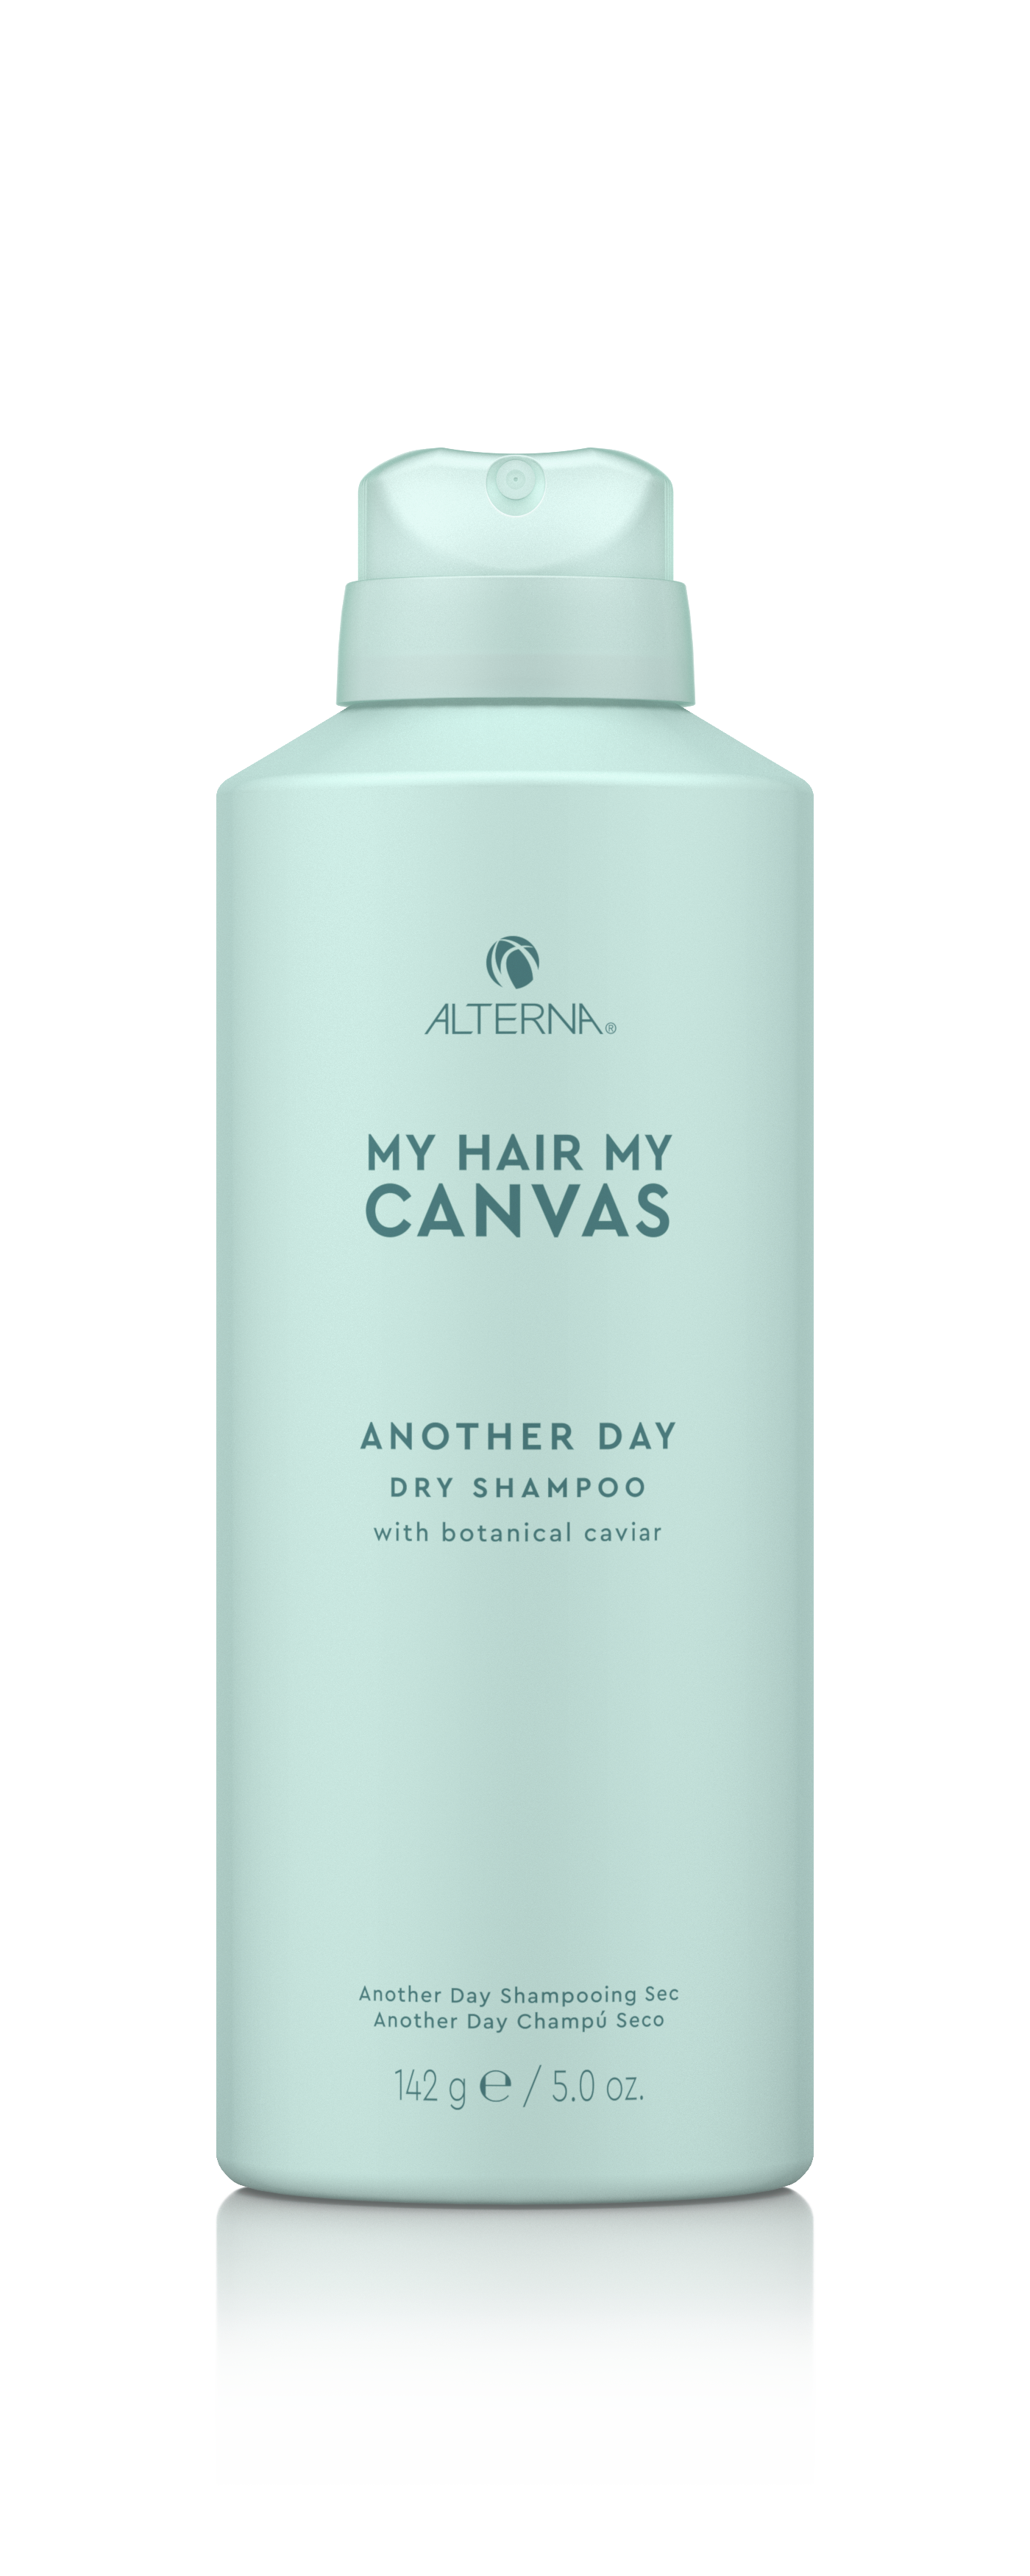 My Hair. My Canvas. Another Day Dry Shampoo